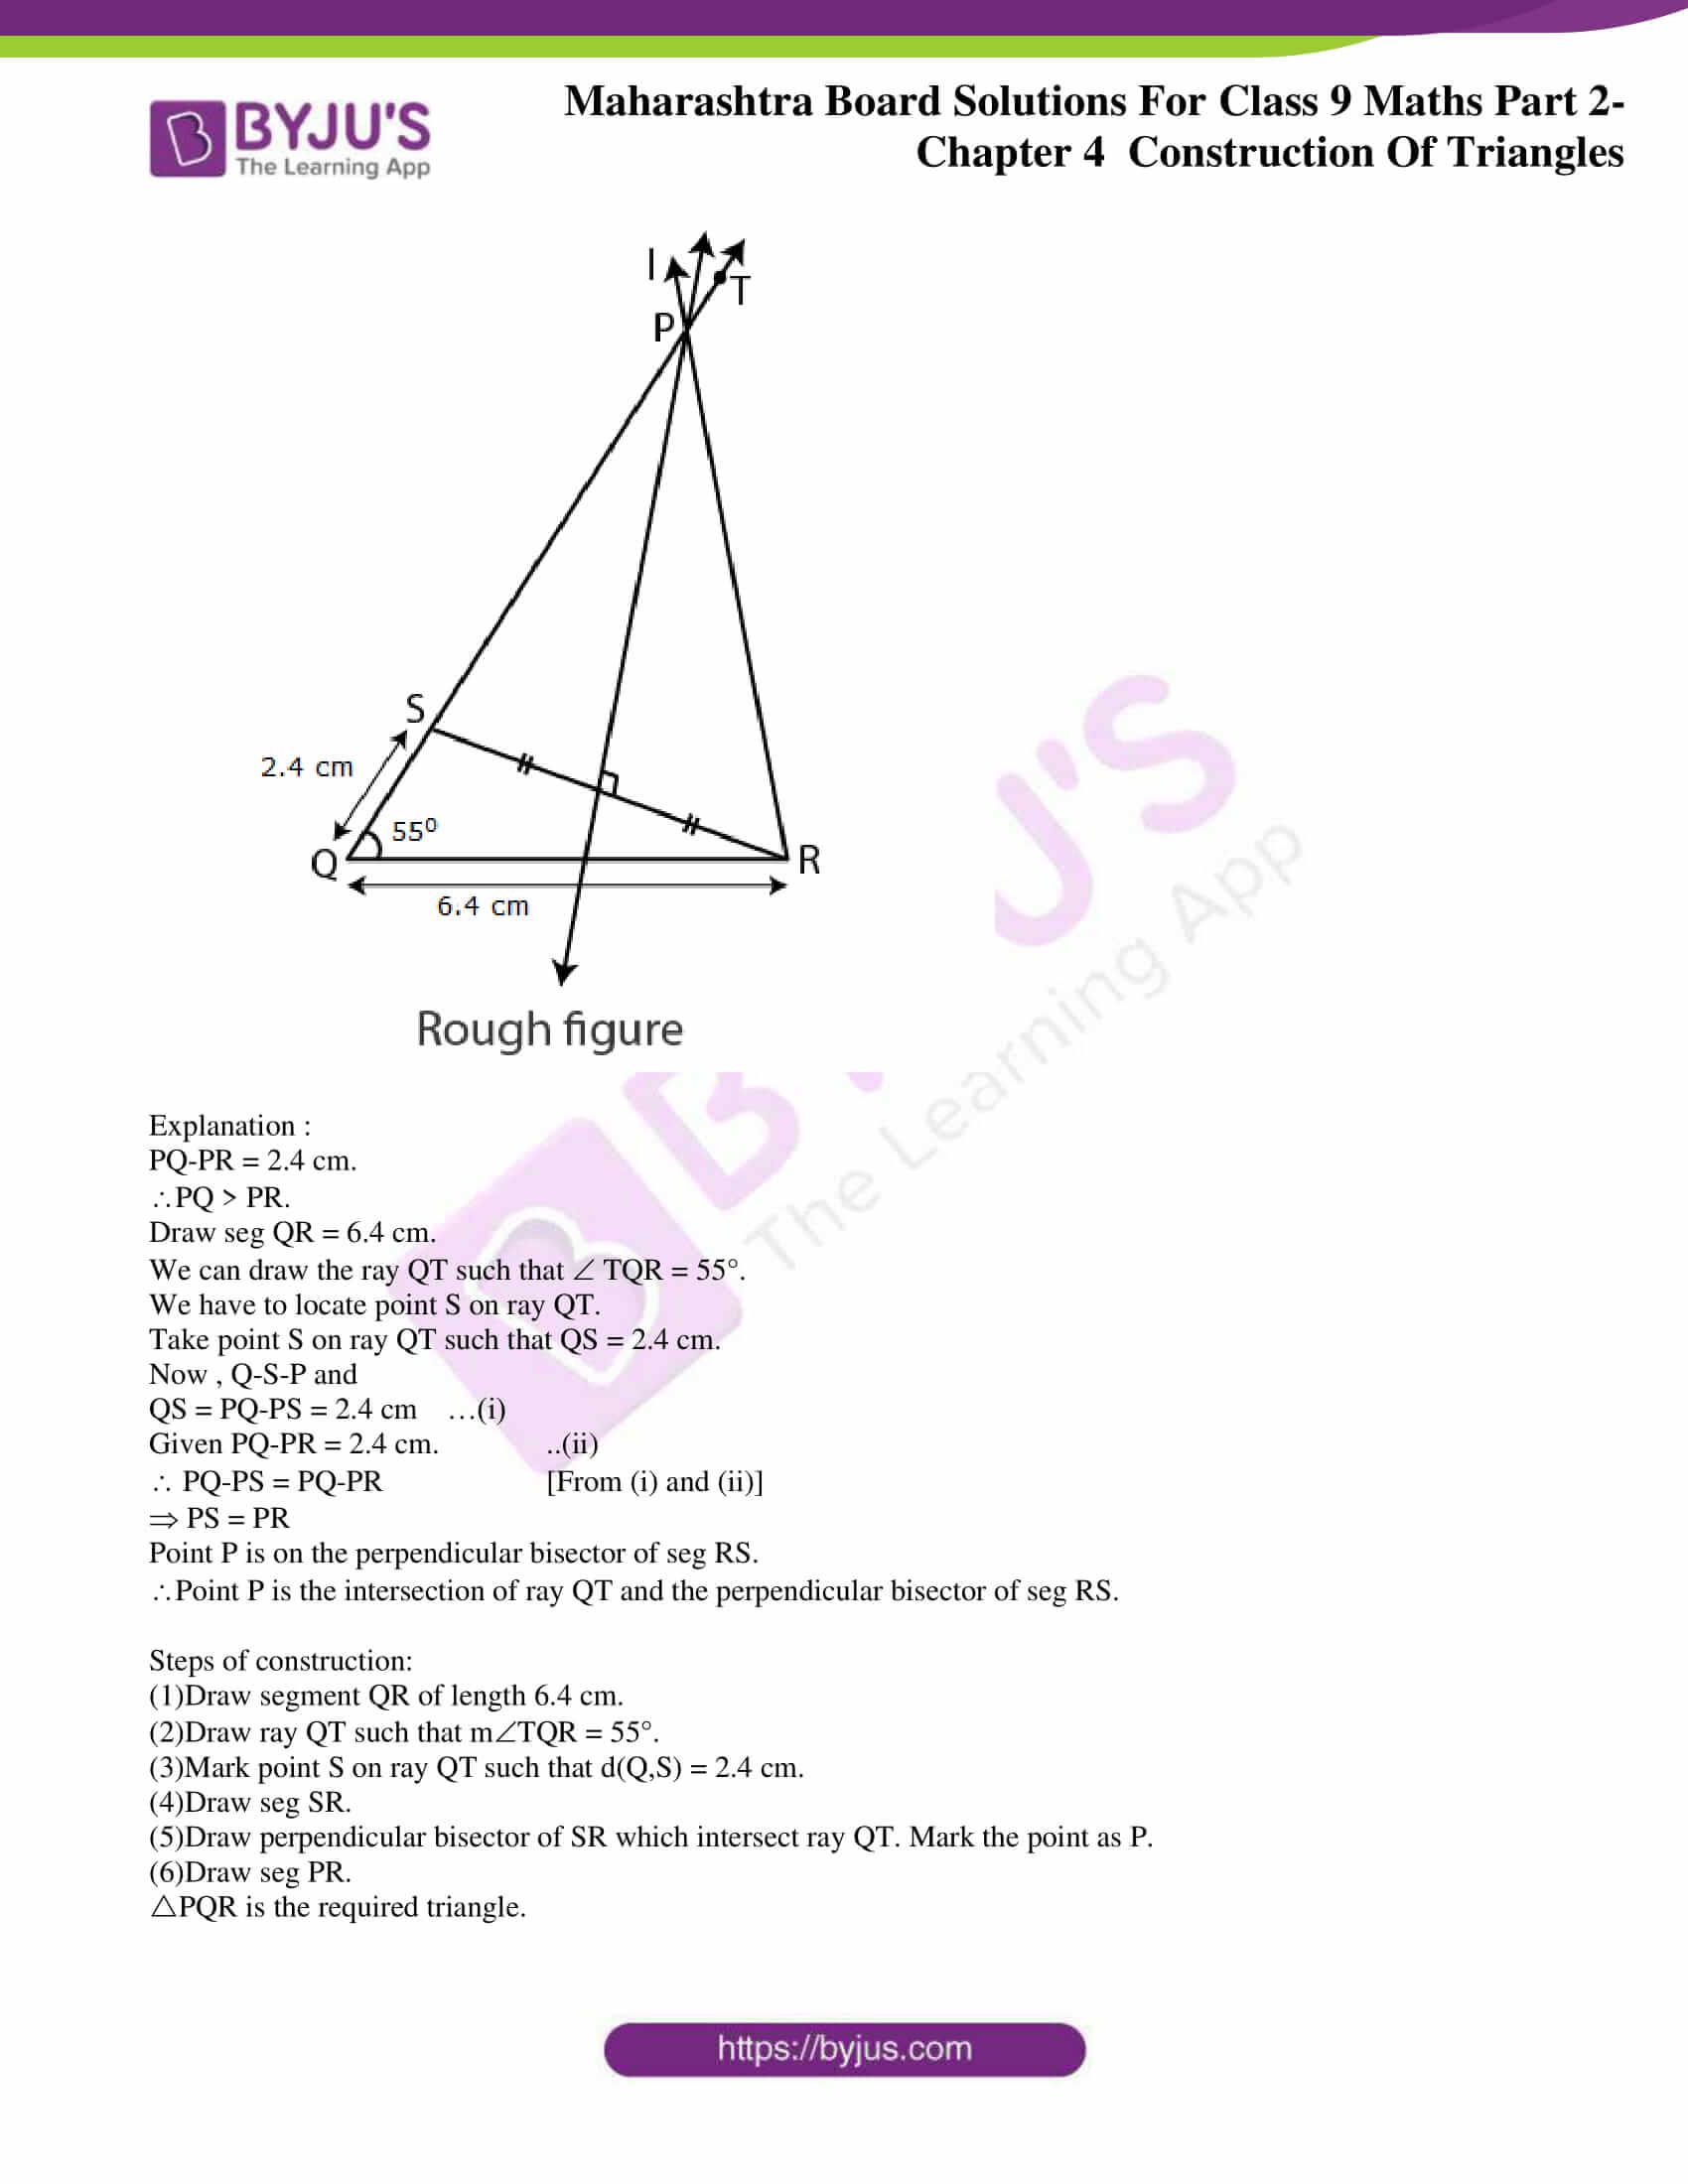 msbshse solutions for class 9 maths part 2 chapter 4 21